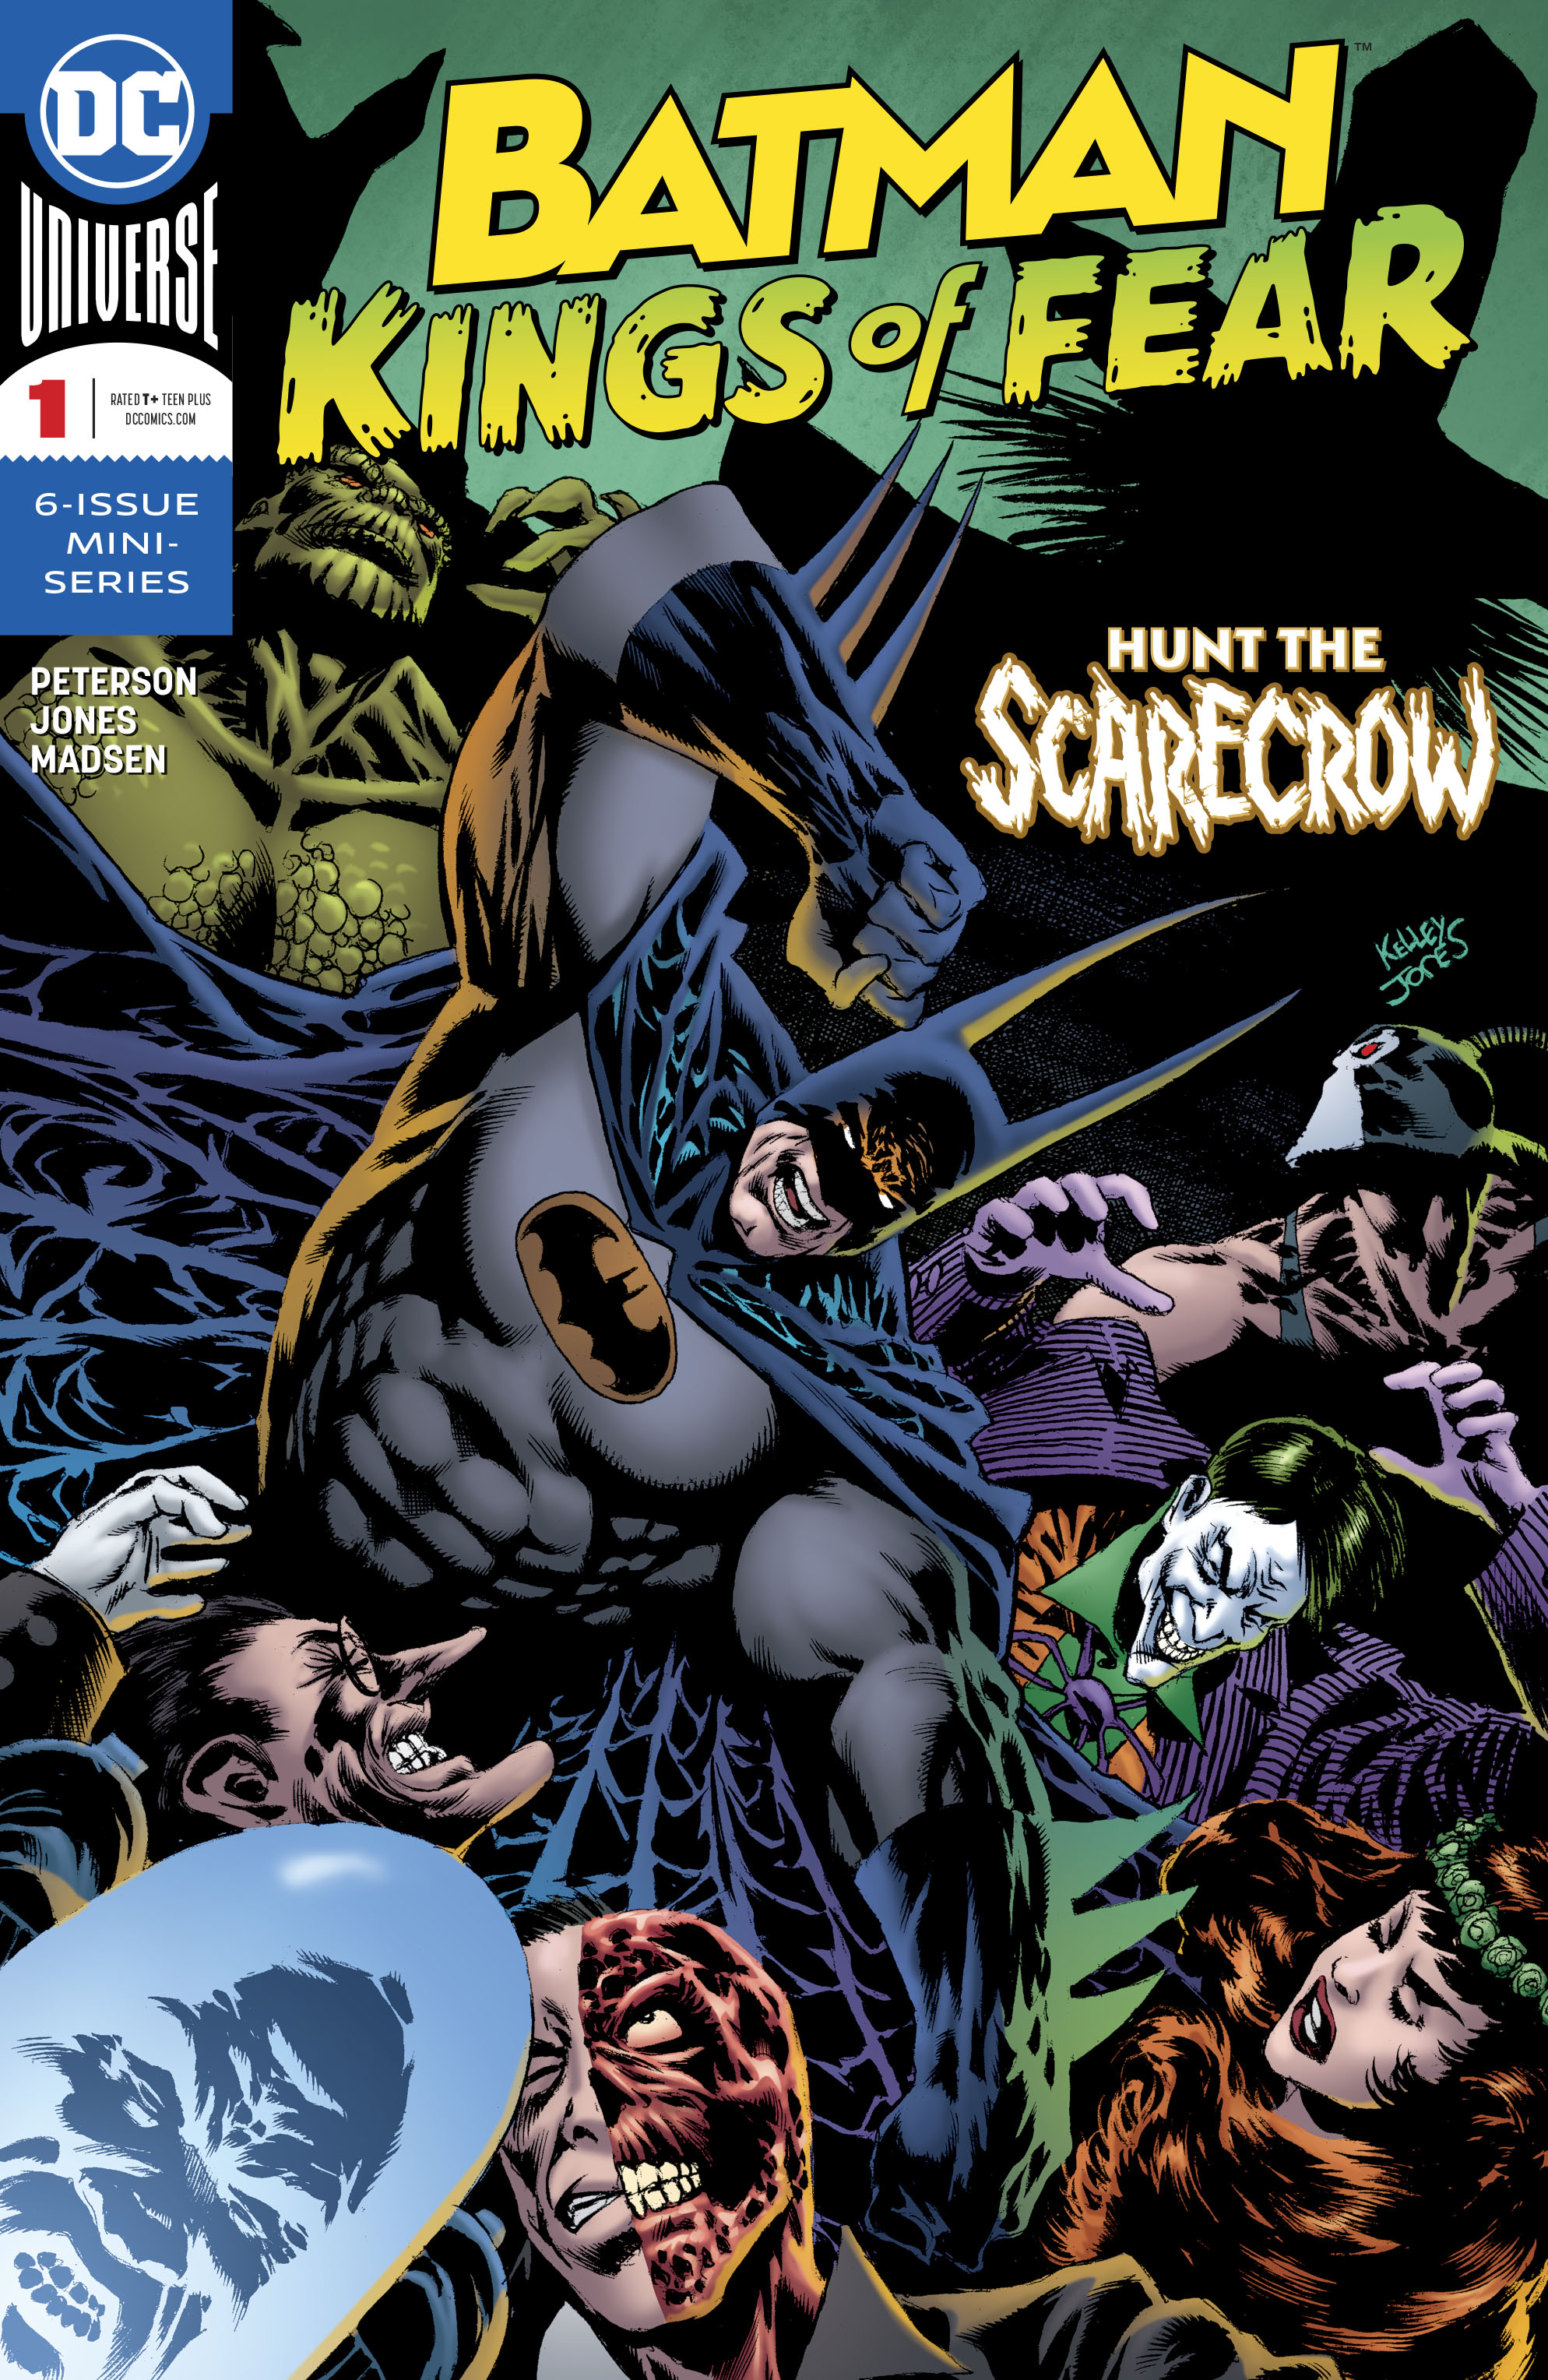 BATMAN KINGS OF FEAR #1 (OF 6)